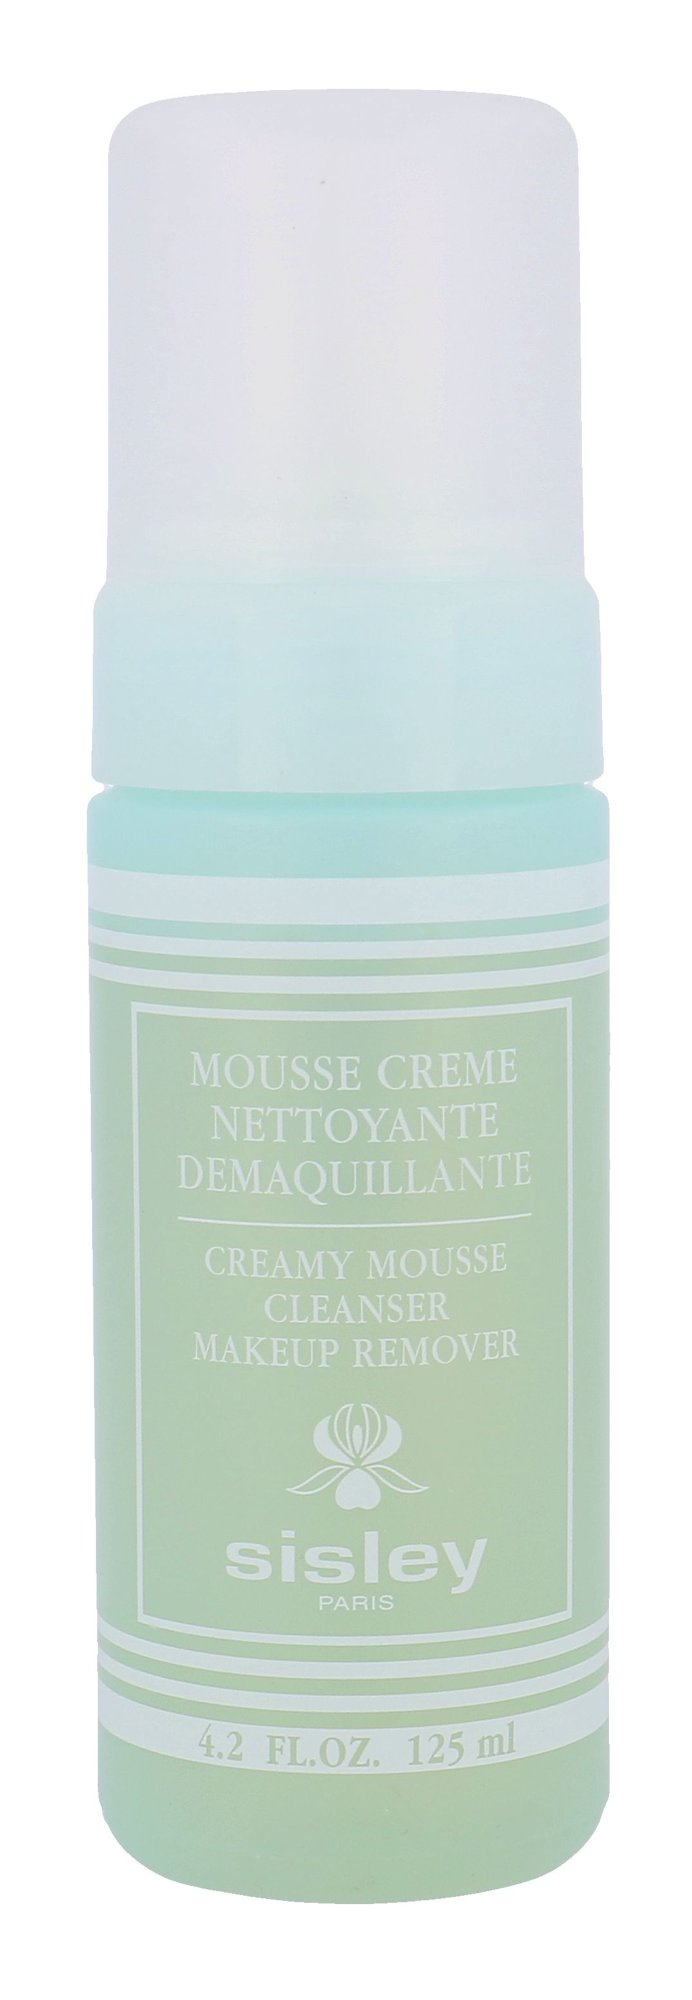 Sisley Creamy Mousse Cleanser Cosmetic 125ml